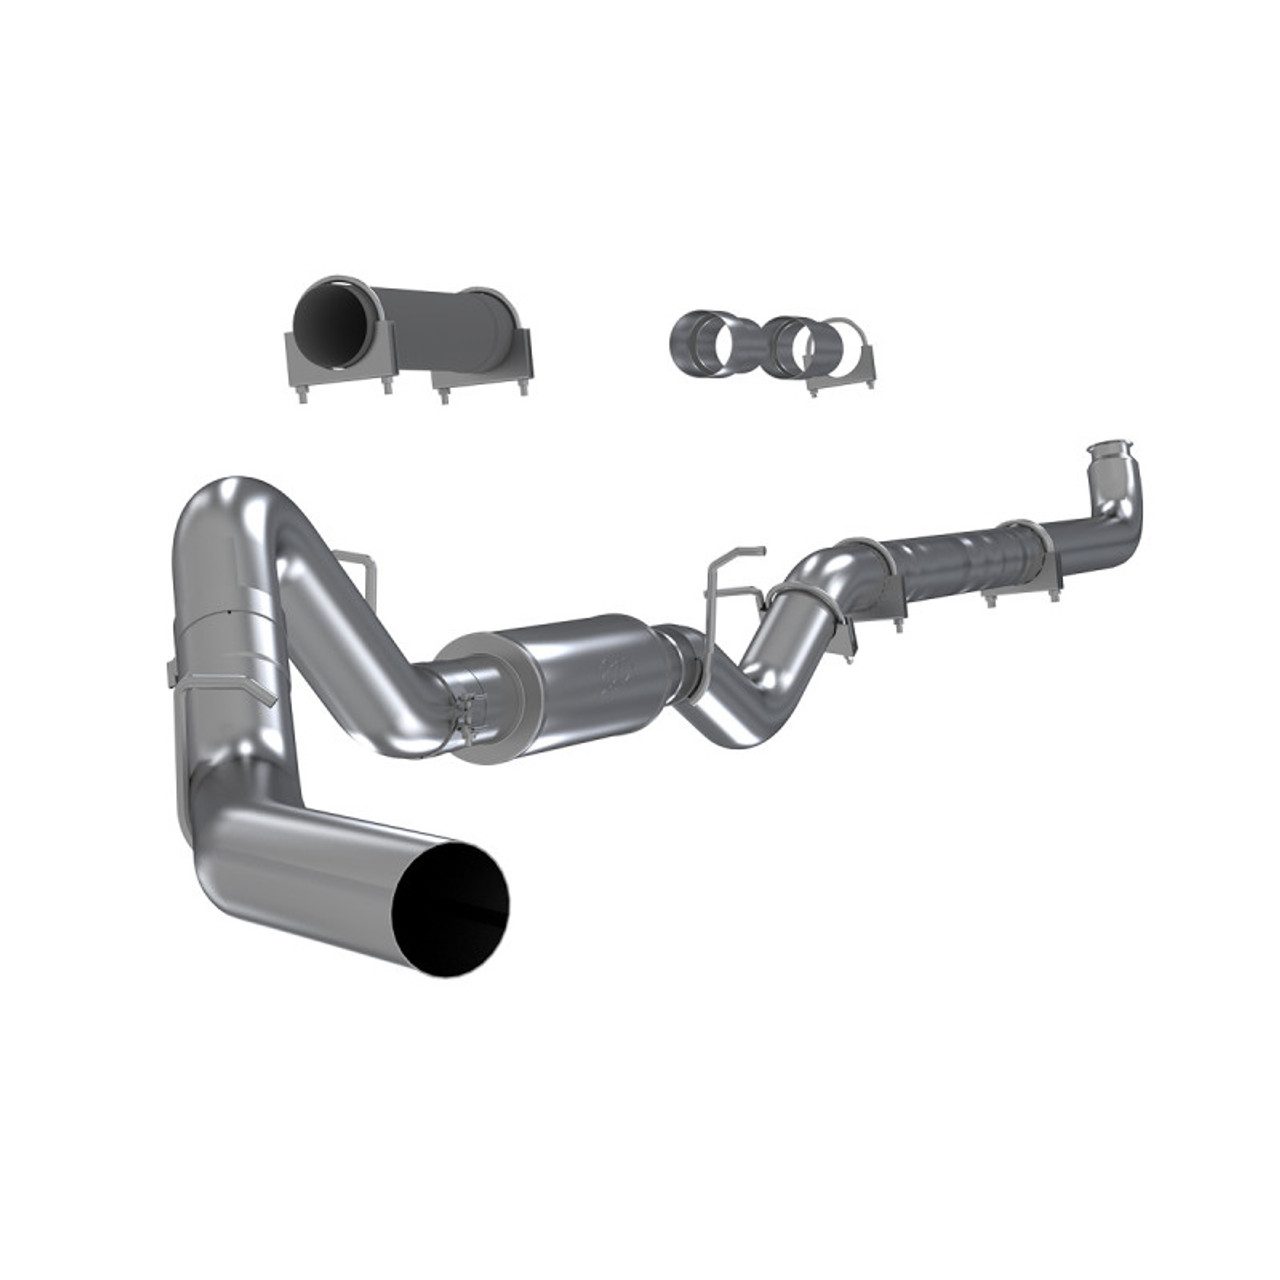 mbrp 4 exhaust 01 07 chevy gmc duramax diesel 6 6l lb7 lly lbz aluminized downpipe back